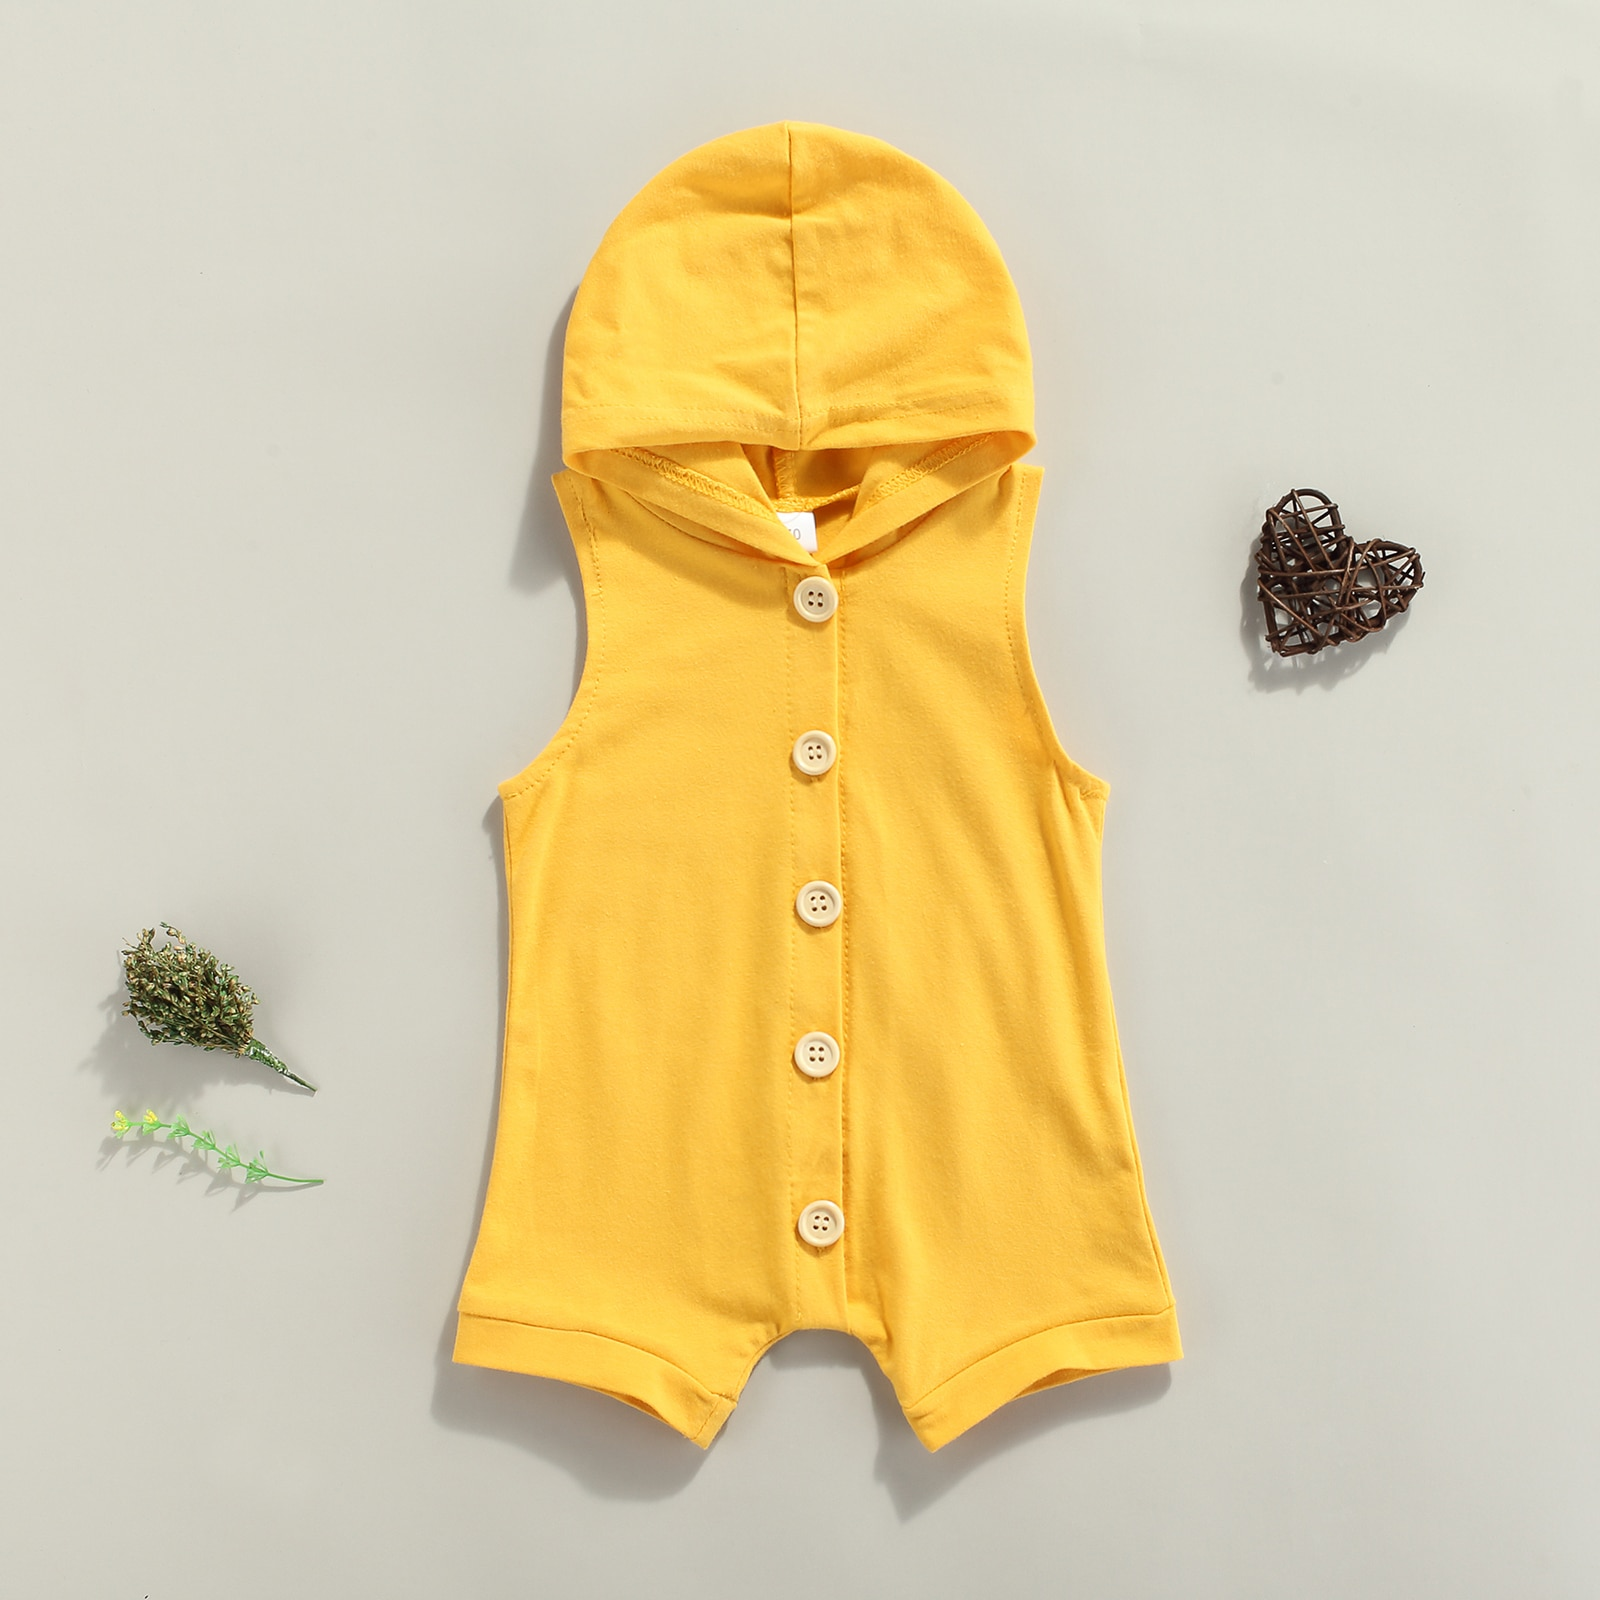 2021 Casual Breathable Baby Girls Boys Romper, Infant Summer Simple Style Solid Color Hooded Sleeveless Button Jumpsuit